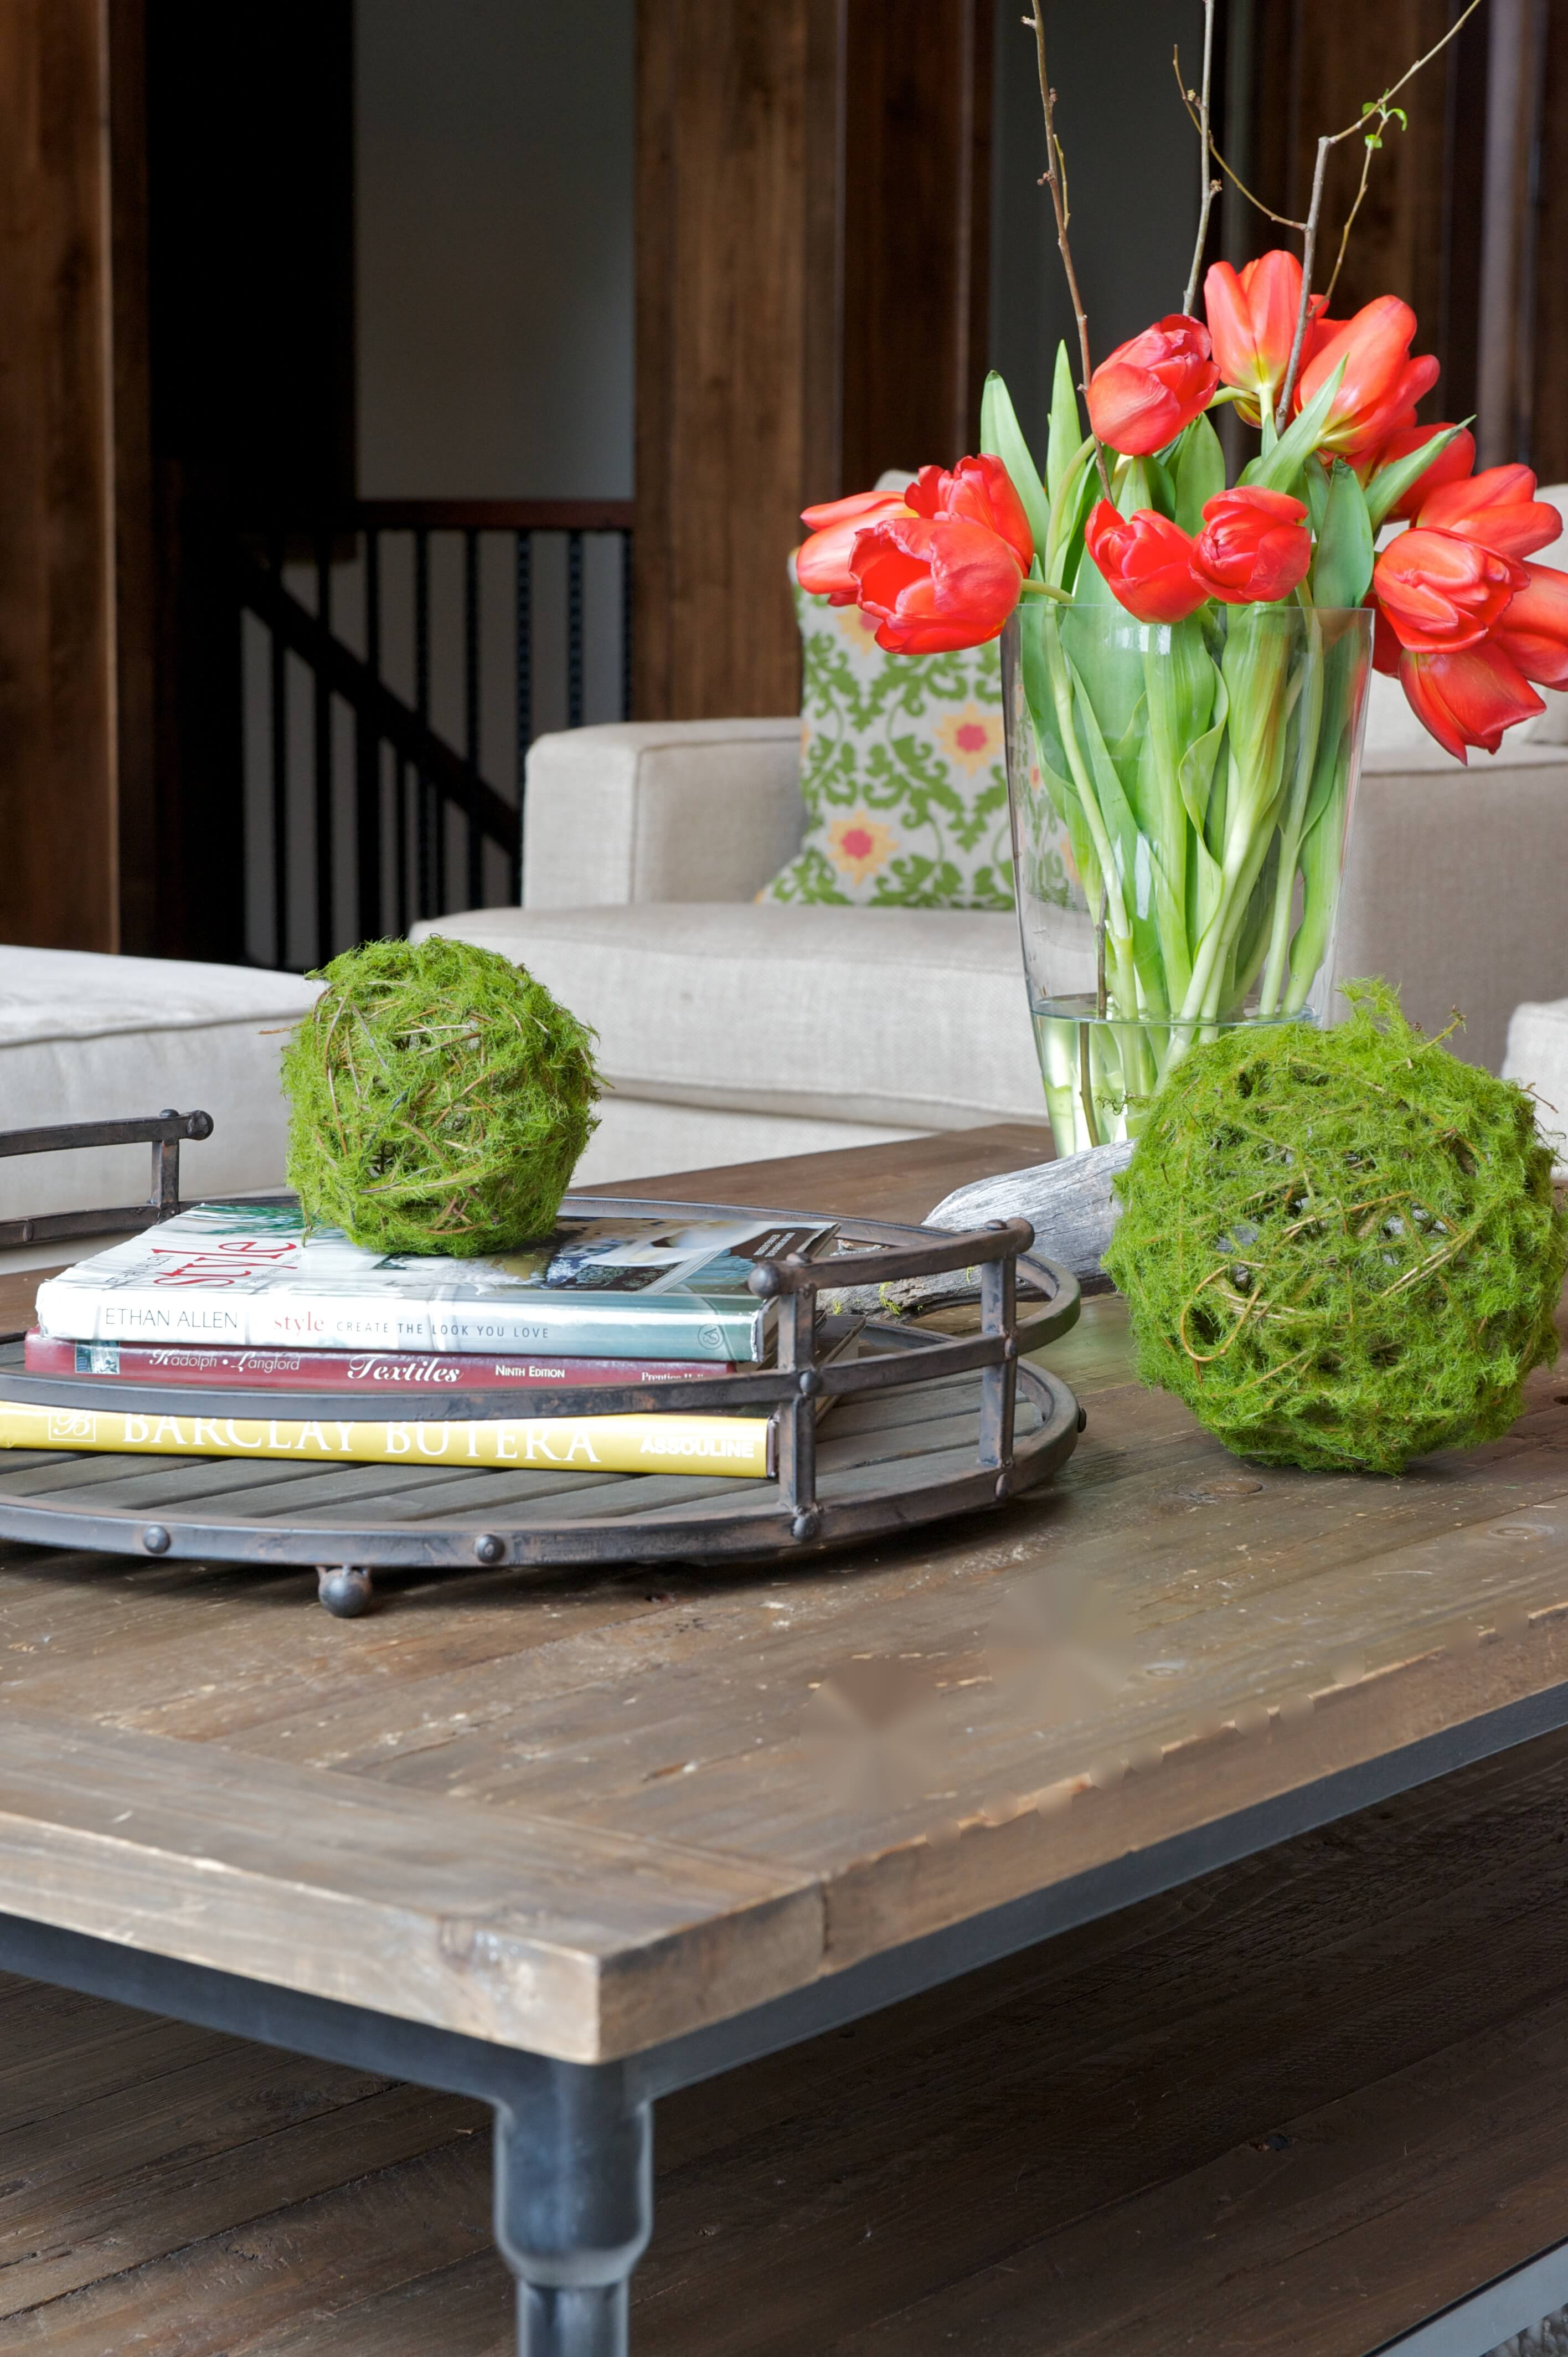 Here we have a close up shot of the coffee table, dark natural wood over black metal frame, with round book holder and green decorative elements. White furniture in background.